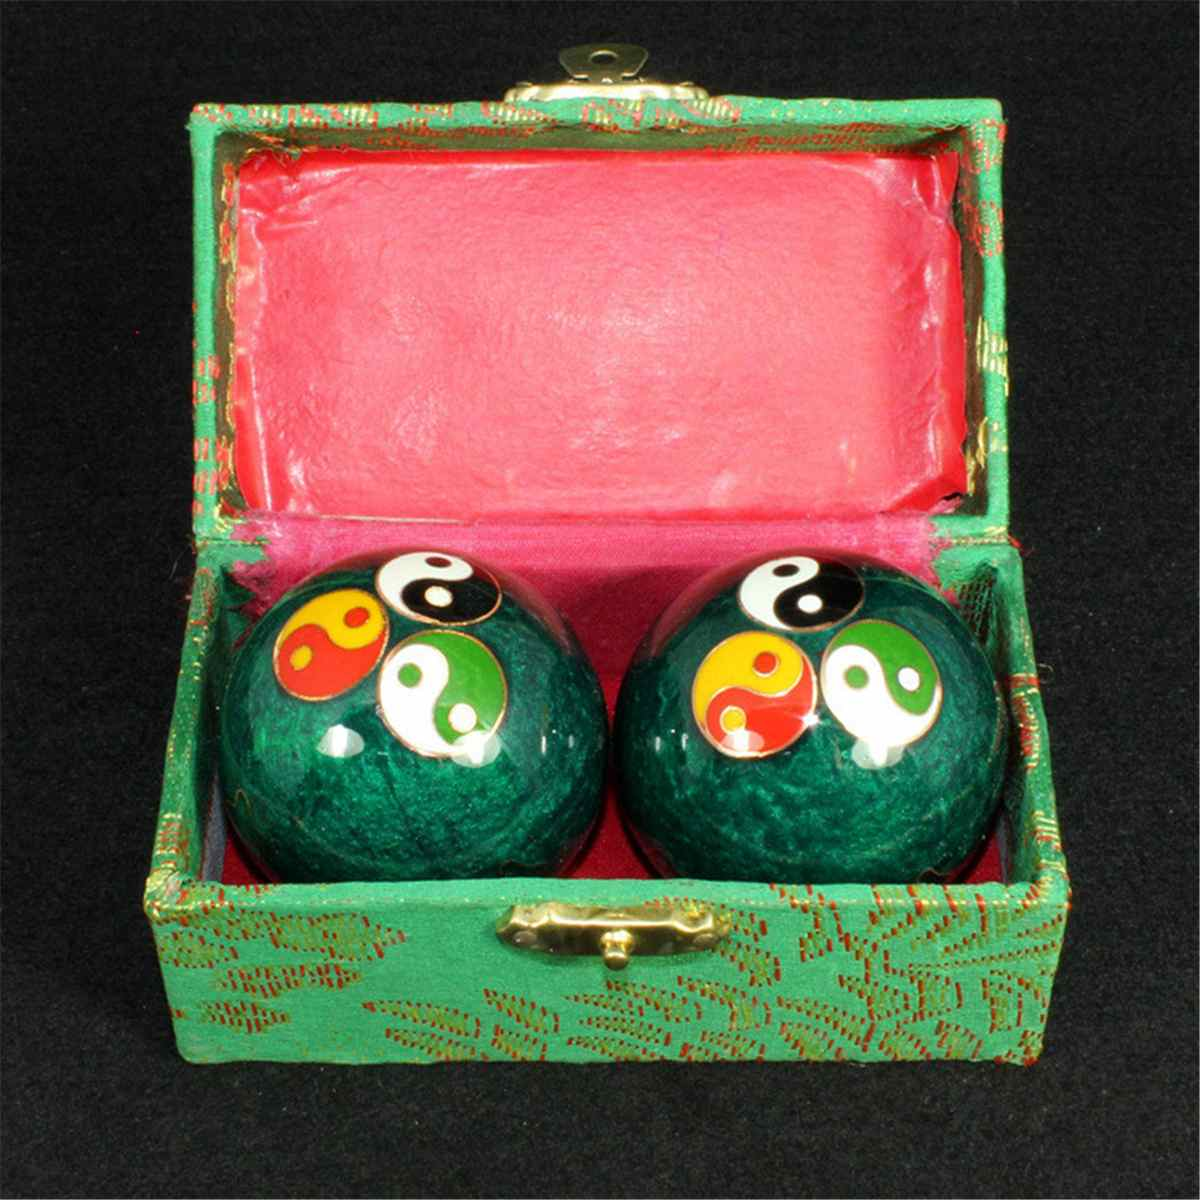 Chinese Health Daily Meditation Balls hand finger Exercise Stress Relief Baoding Balls Relaxation Th